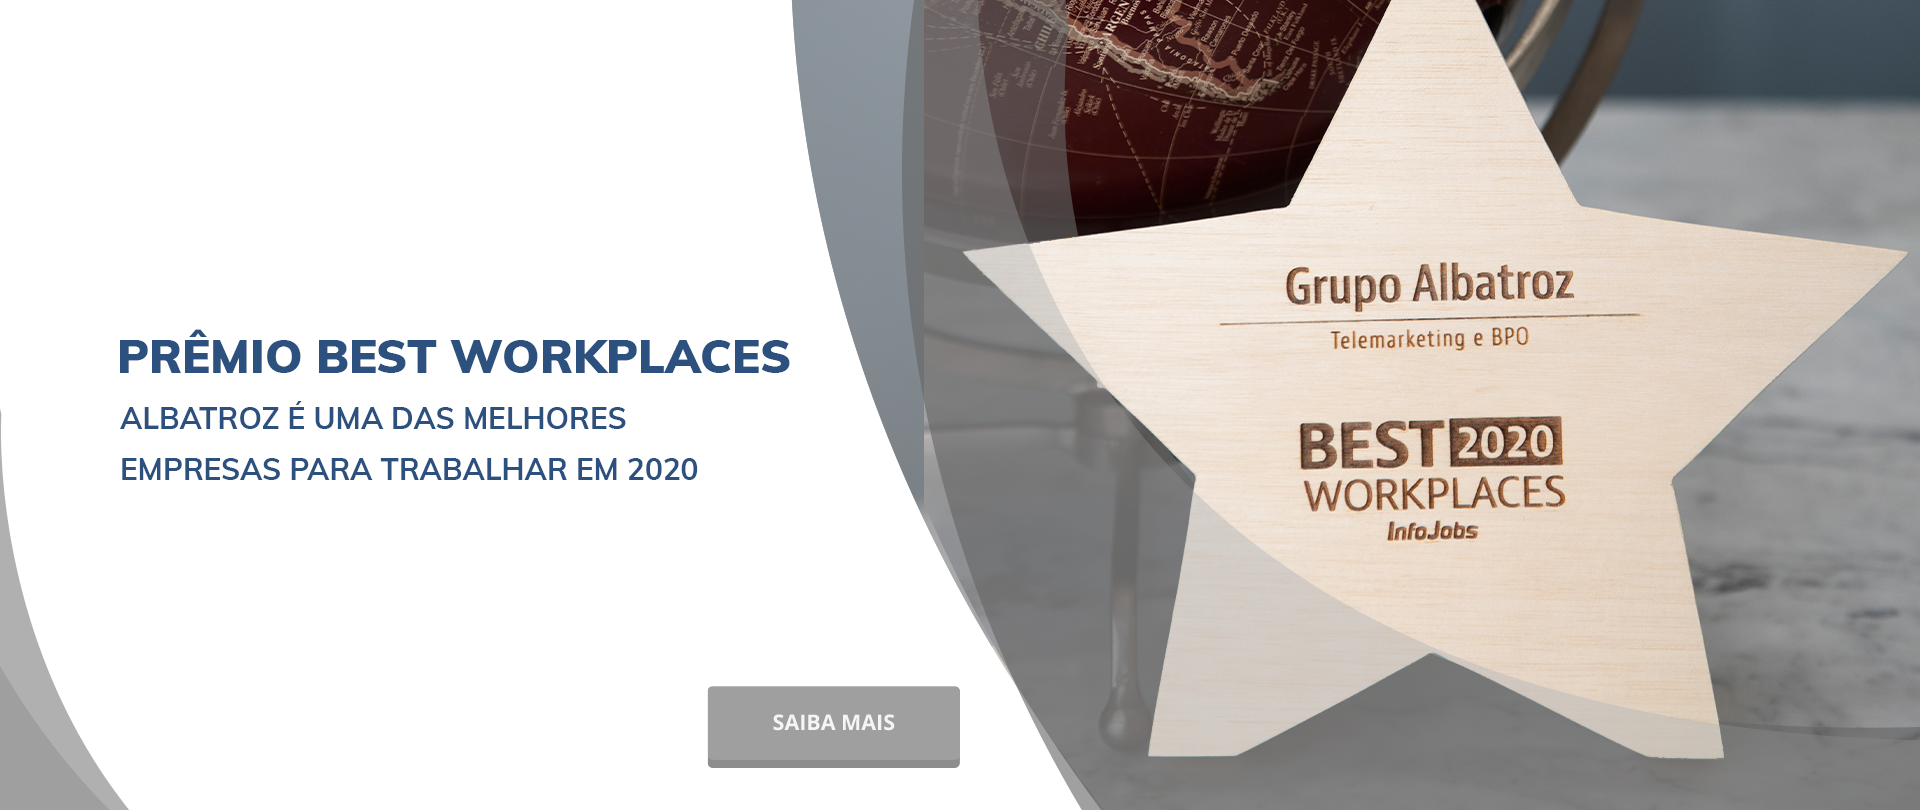 Prêmio Best WorkPlaces